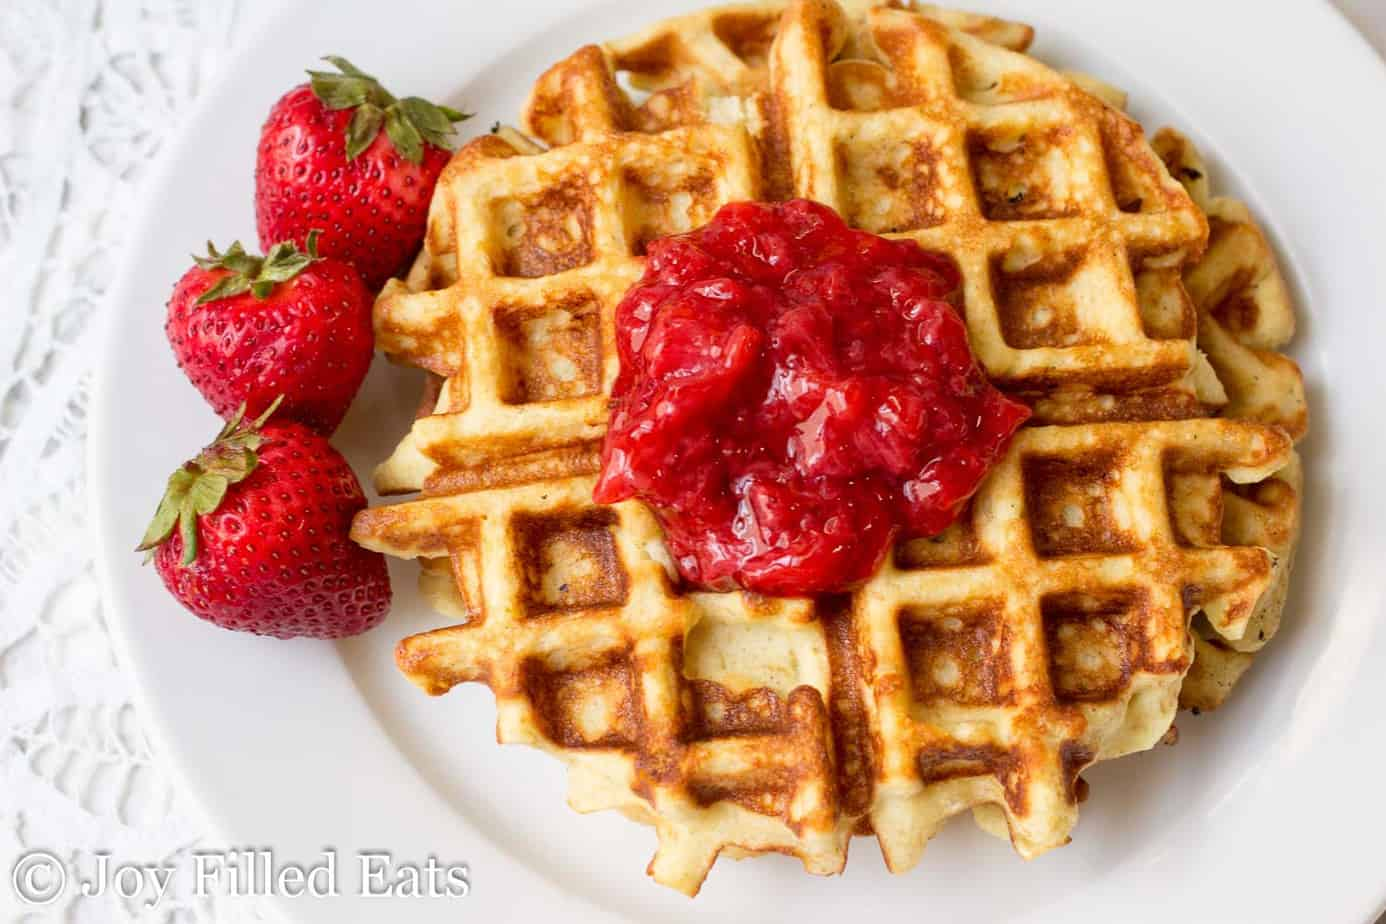 almond flour vanilla waffles topped with strawberry jam and served next to whole strawberries